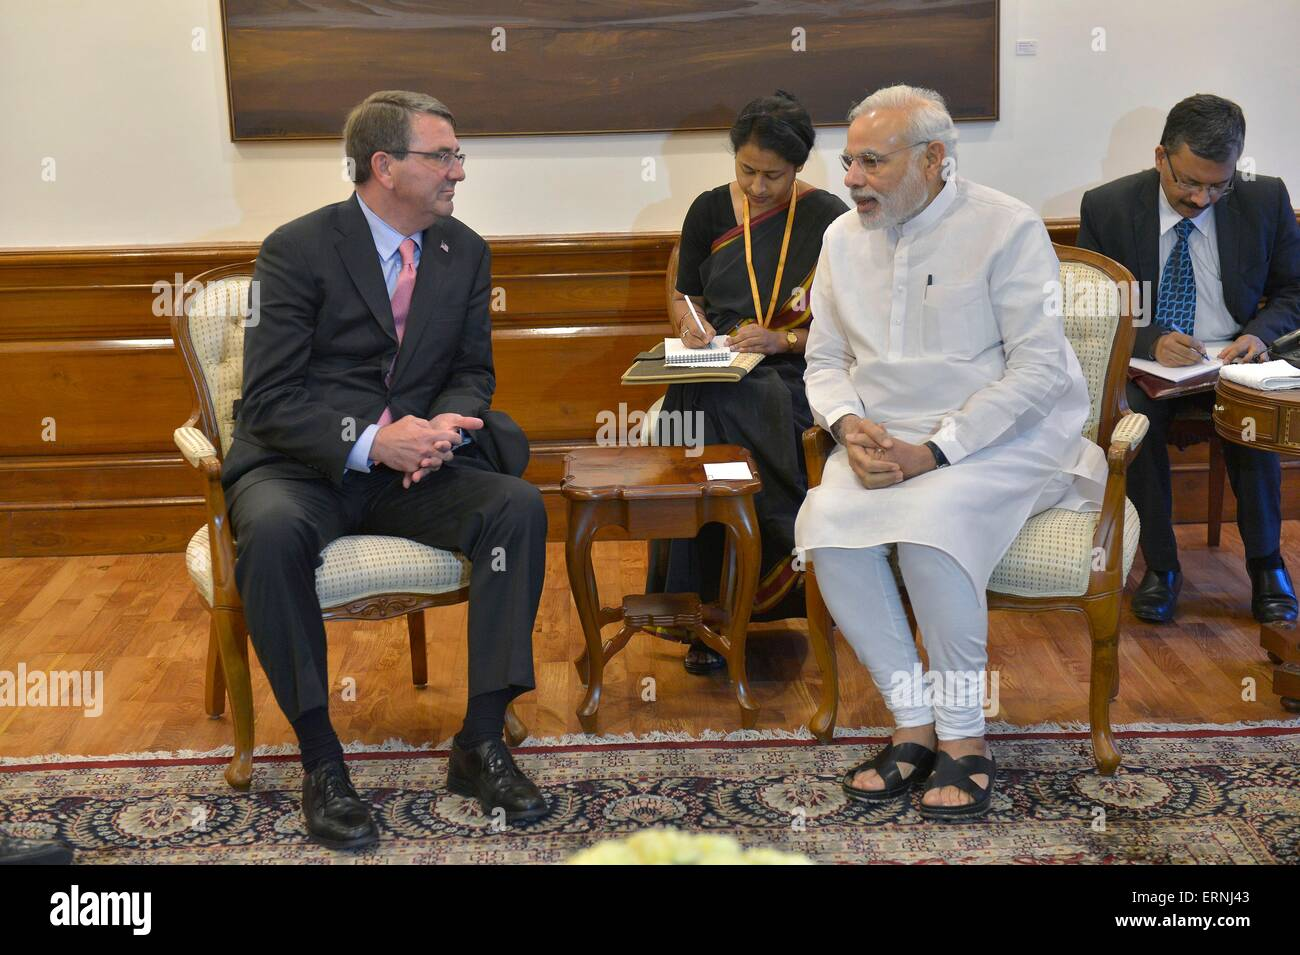 US Secretary of Defense Ashton Carter meets with Prime Minister of India Narendra Modi at the Presidential Palace - Stock Image